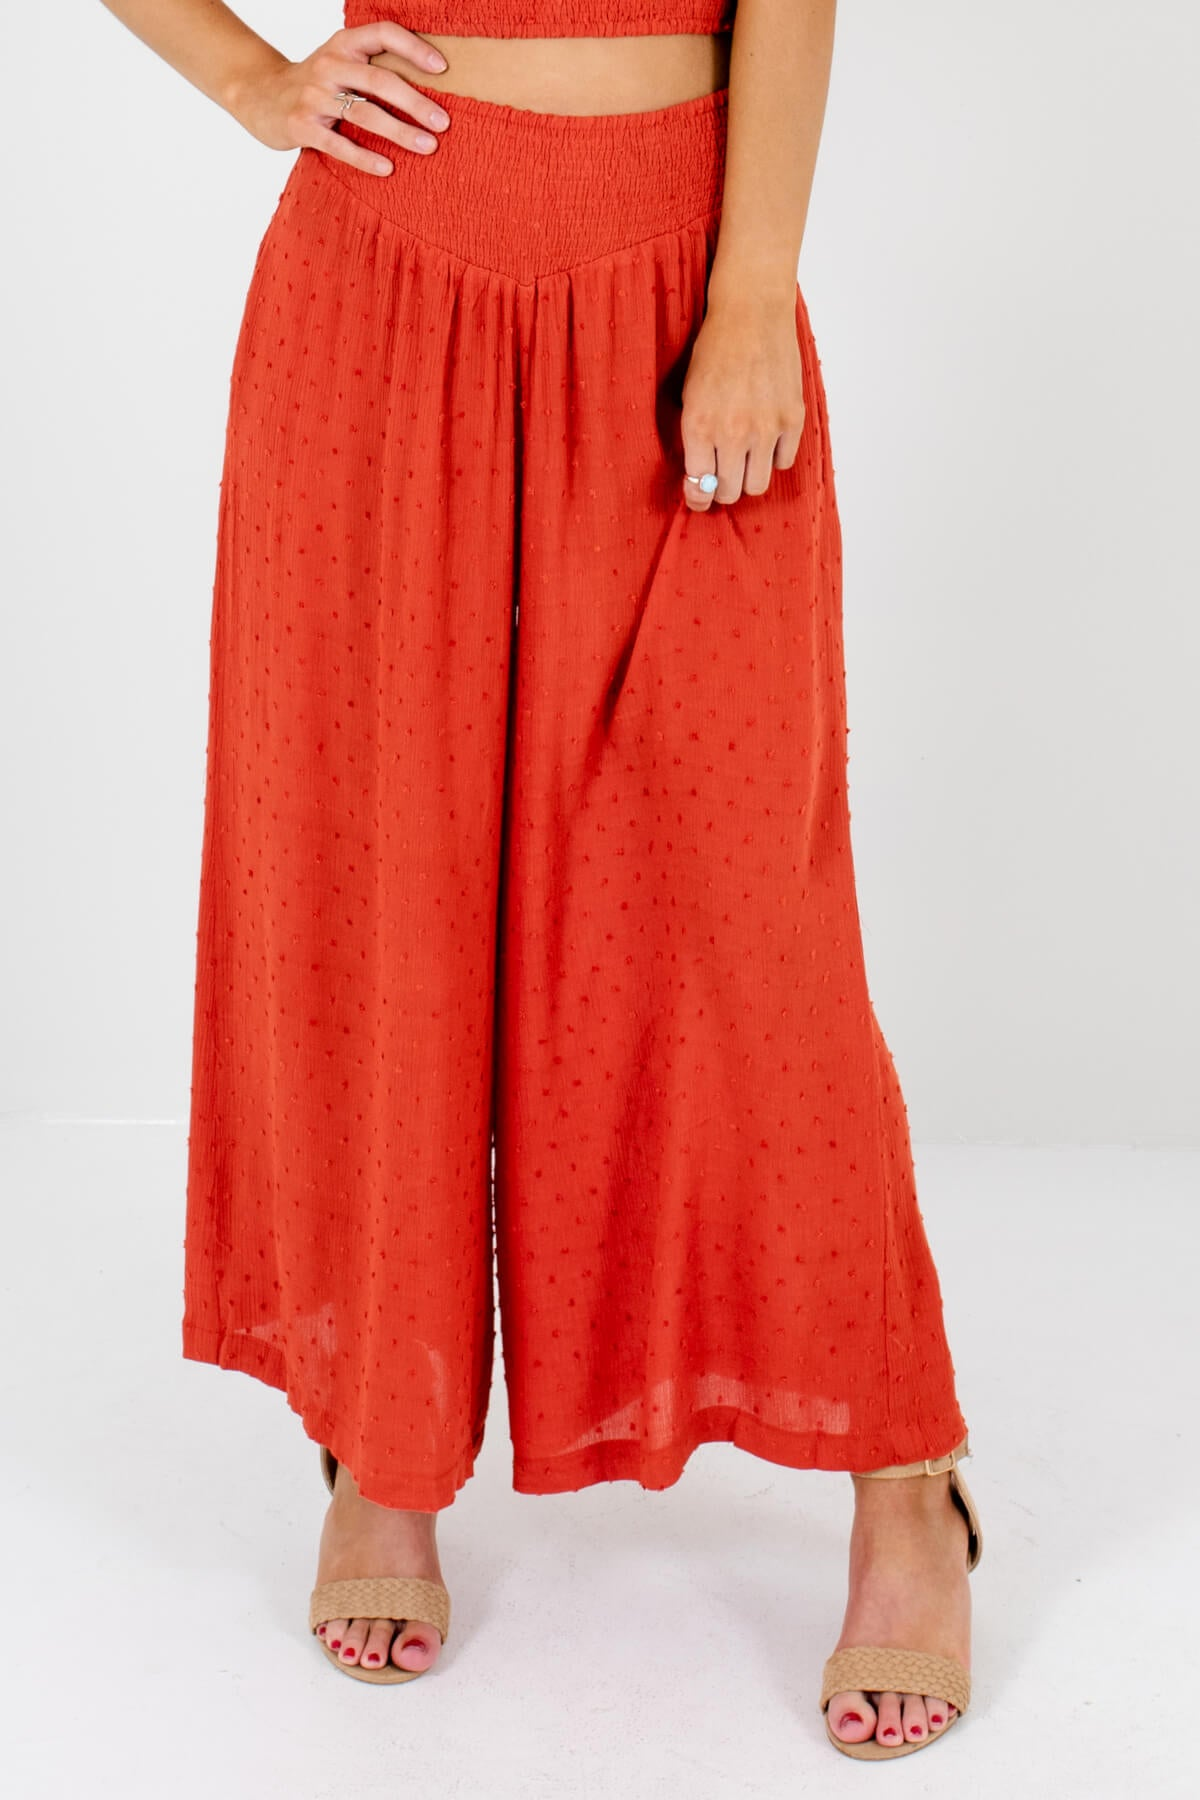 Orange Boutique Palazzo Style Pants for Women